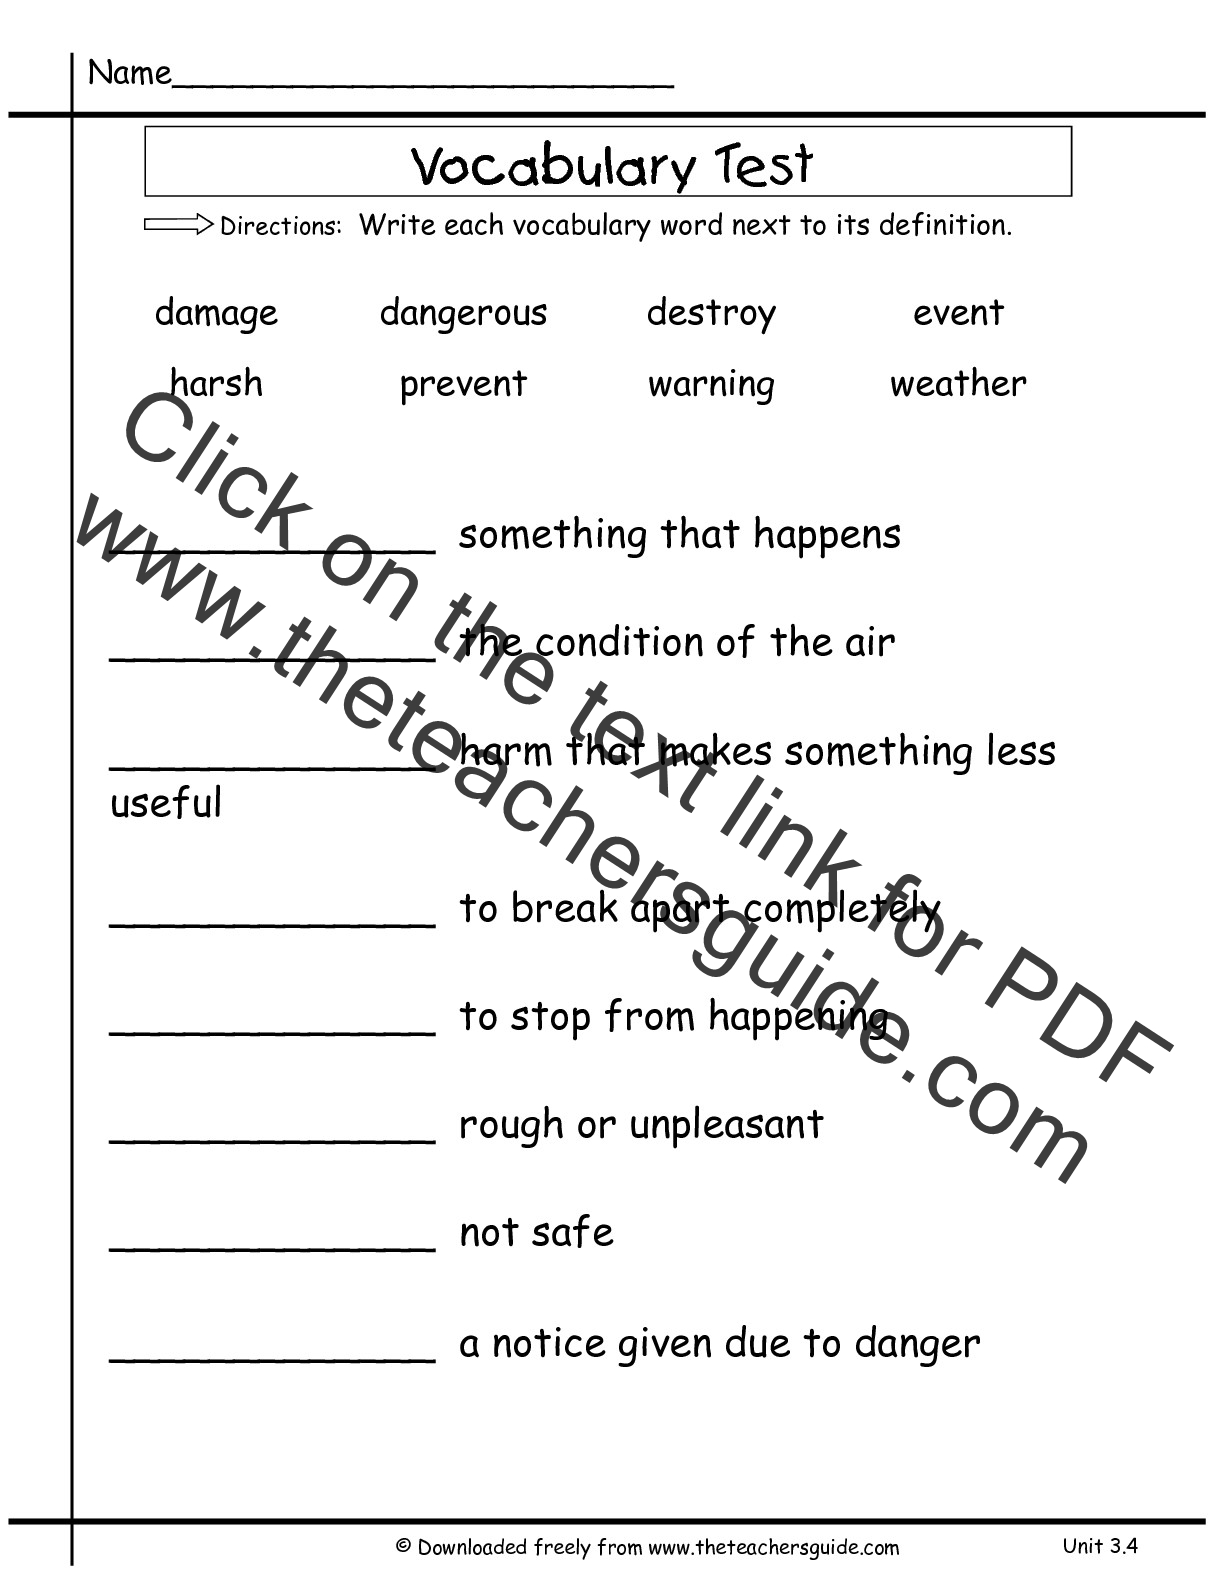 Worksheet 2nd Grade Words vocabulary words for 2nd grade with definitions scalien and scalien